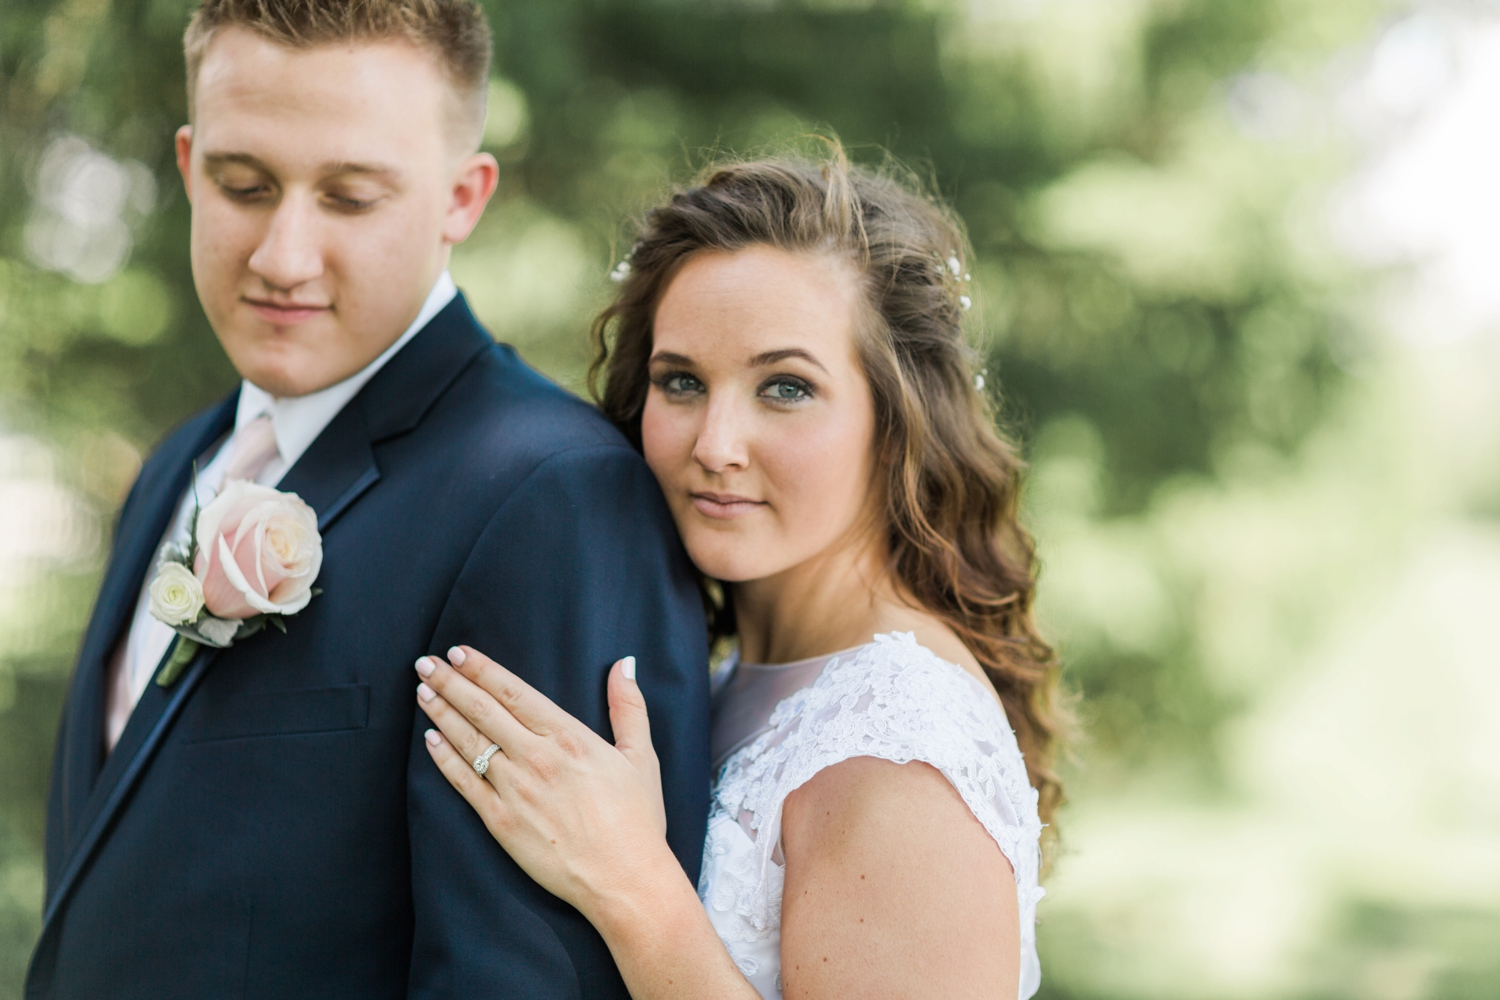 Community_Life_Center_Indianapolis_Indiana_Wedding_Photographer_Chloe_Luka_Photography_6900.jpg